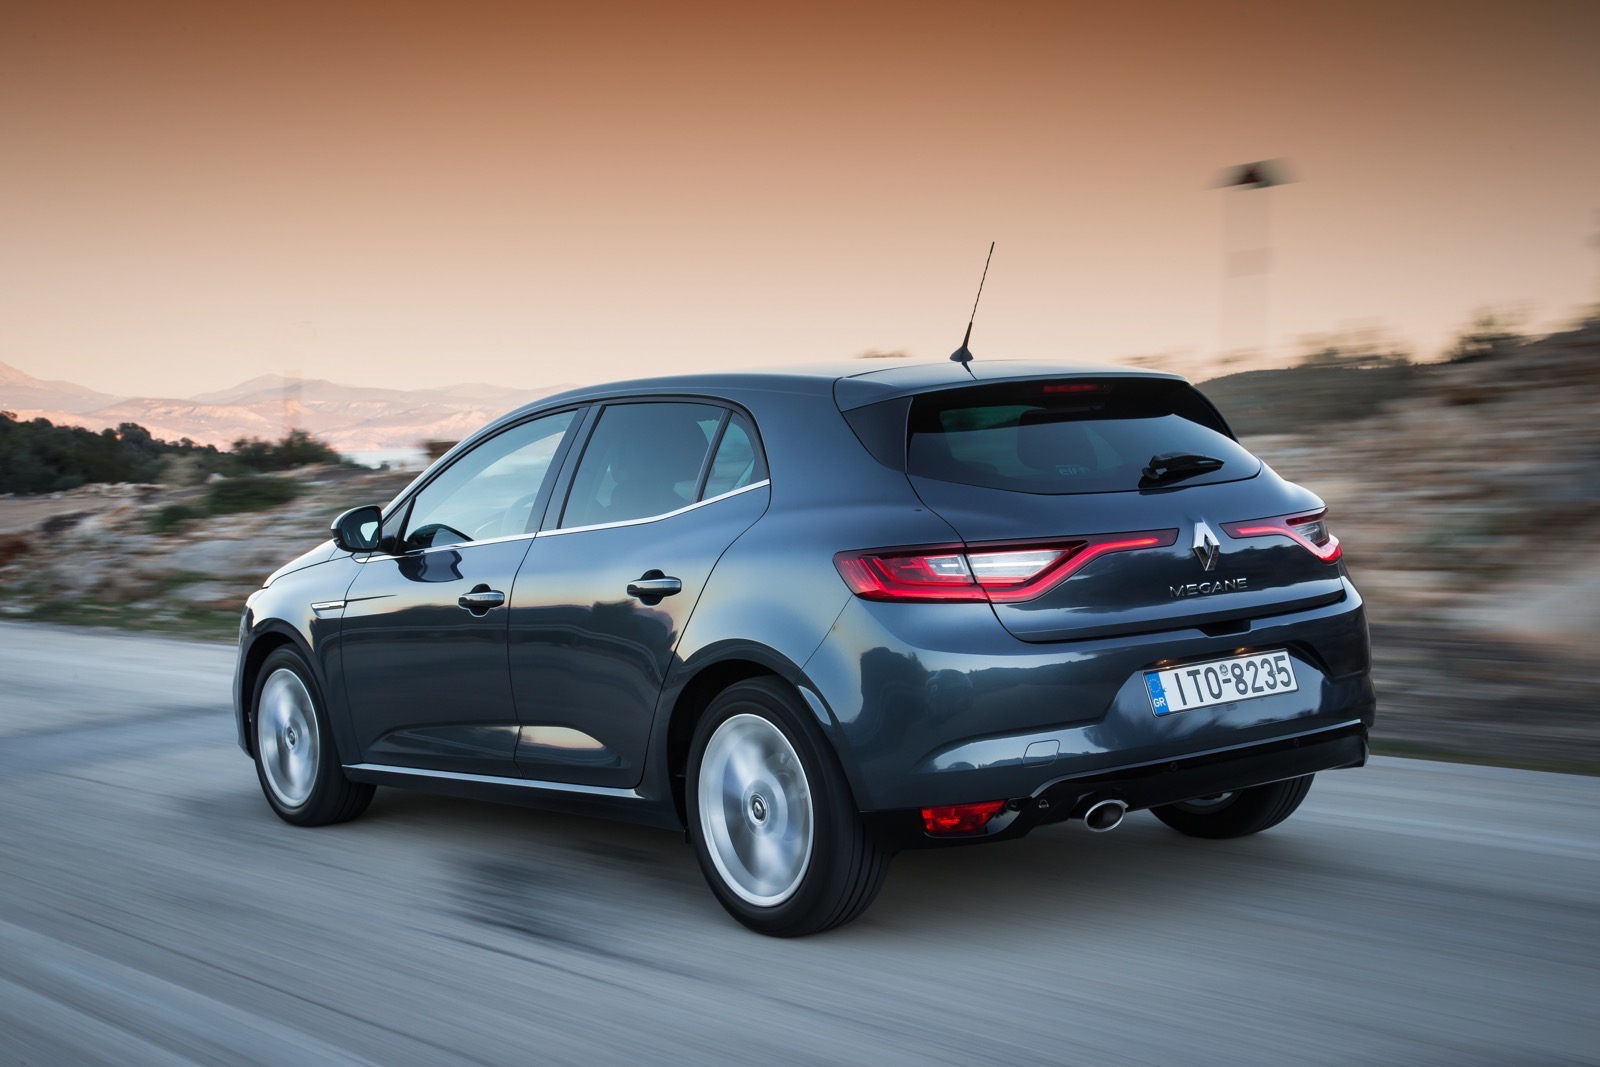 First_Drive_Renault_Megane_136